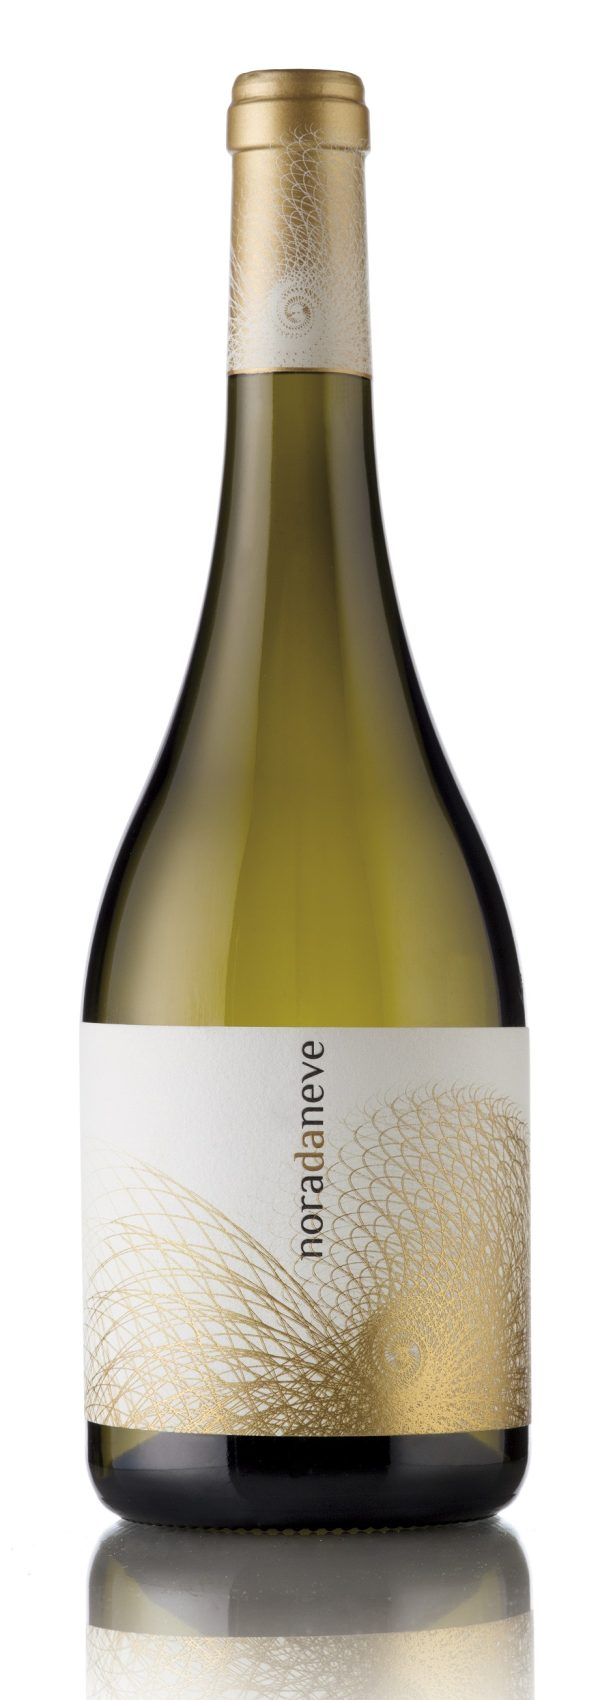 Nora da Neve Albarino 2015 Spanish White Wine 750 mL